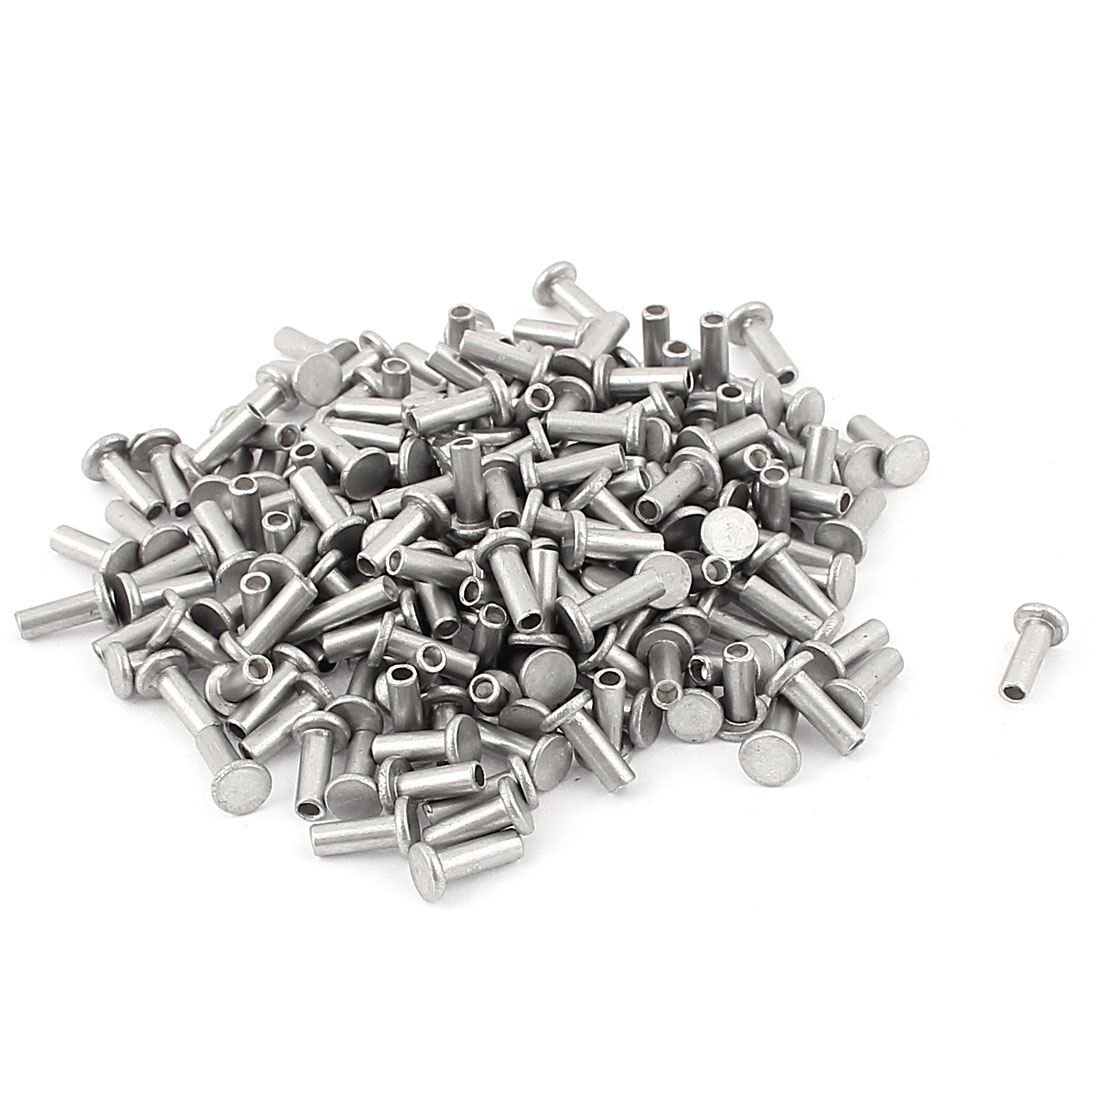 200 Pcs M3 x 8mm Aluminum Flat Head Semi-Tubular Rivets Silver Tone